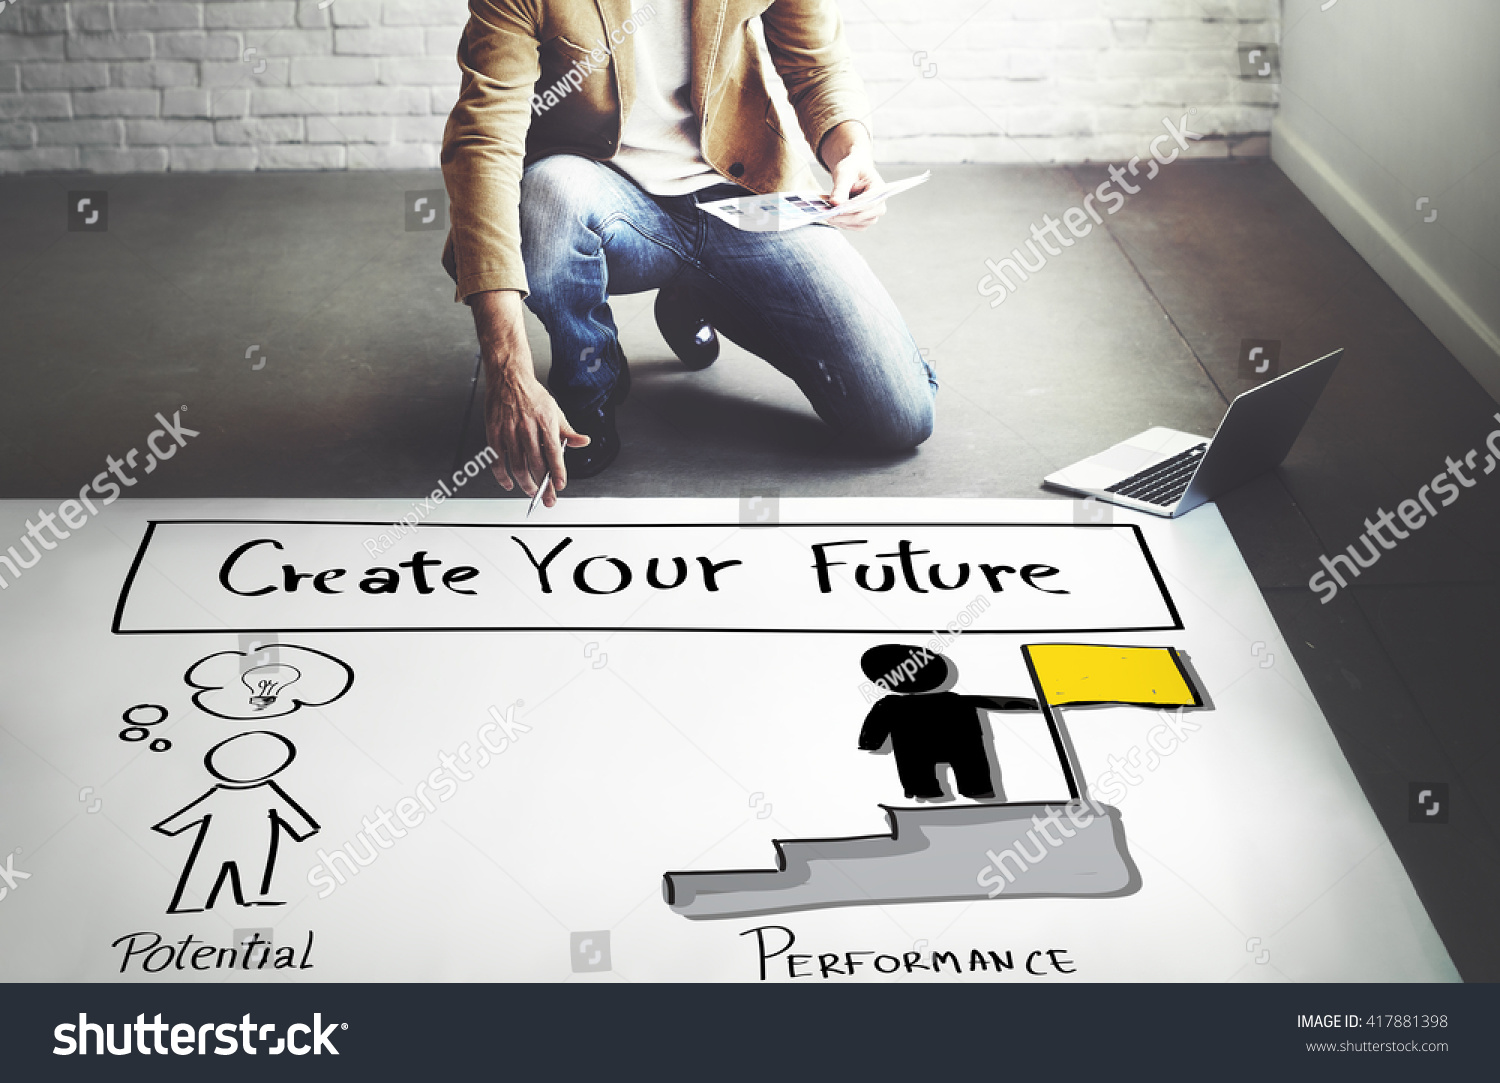 royalty create your future aspiration goals 417881398 stock create your future aspiration goals concept 417881398